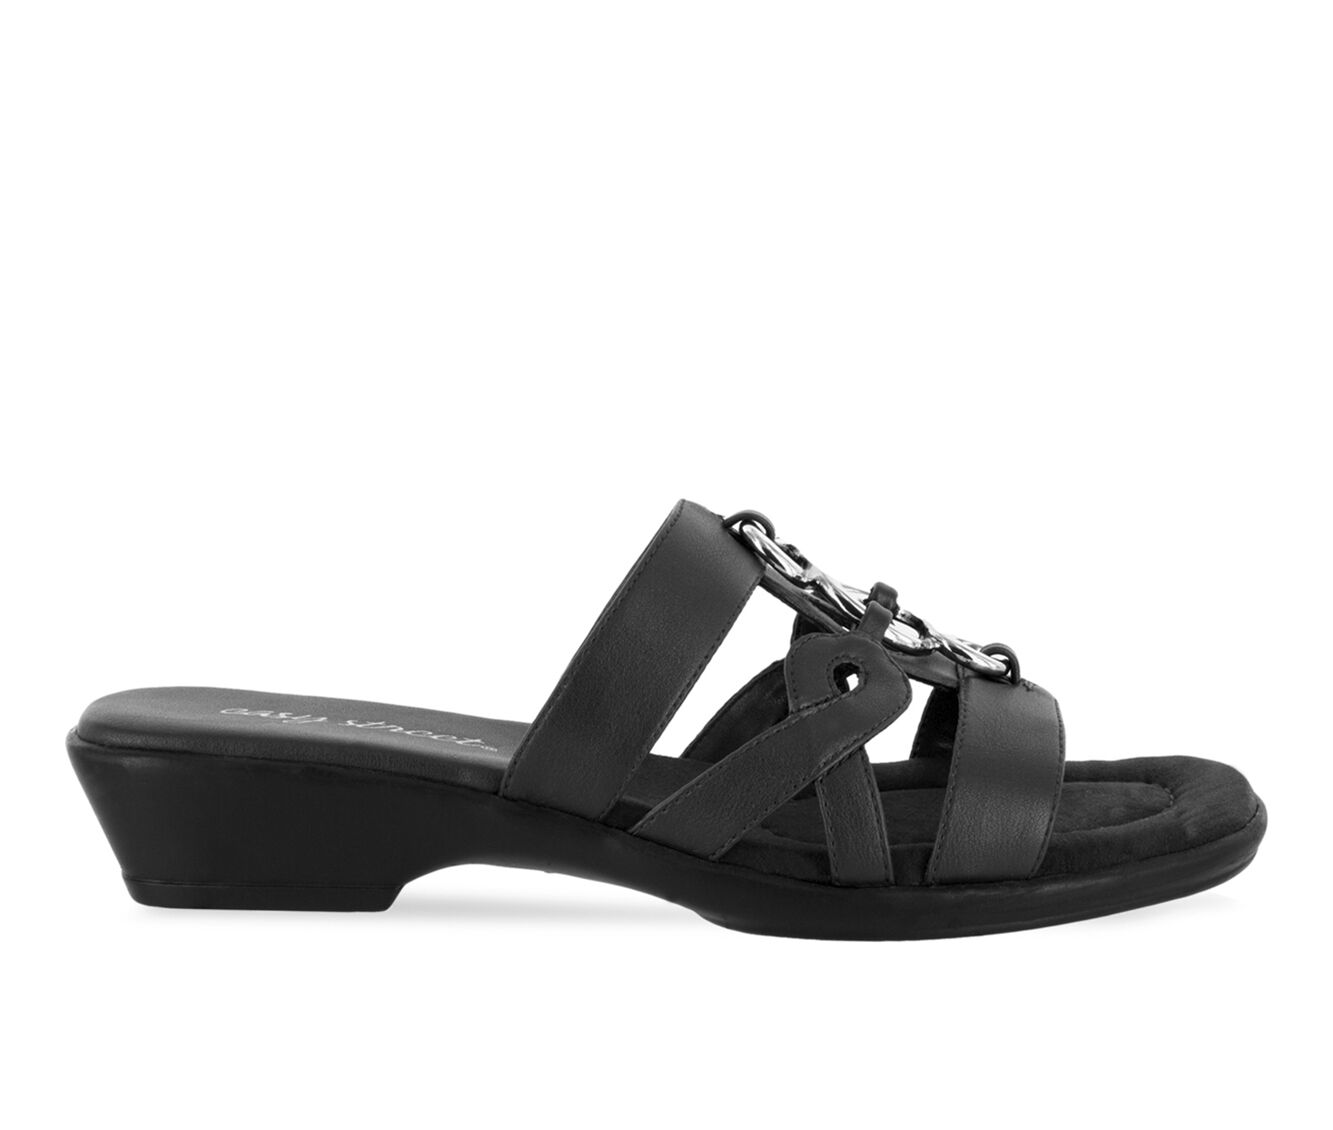 Women's Easy Street Torrid Sandals Black